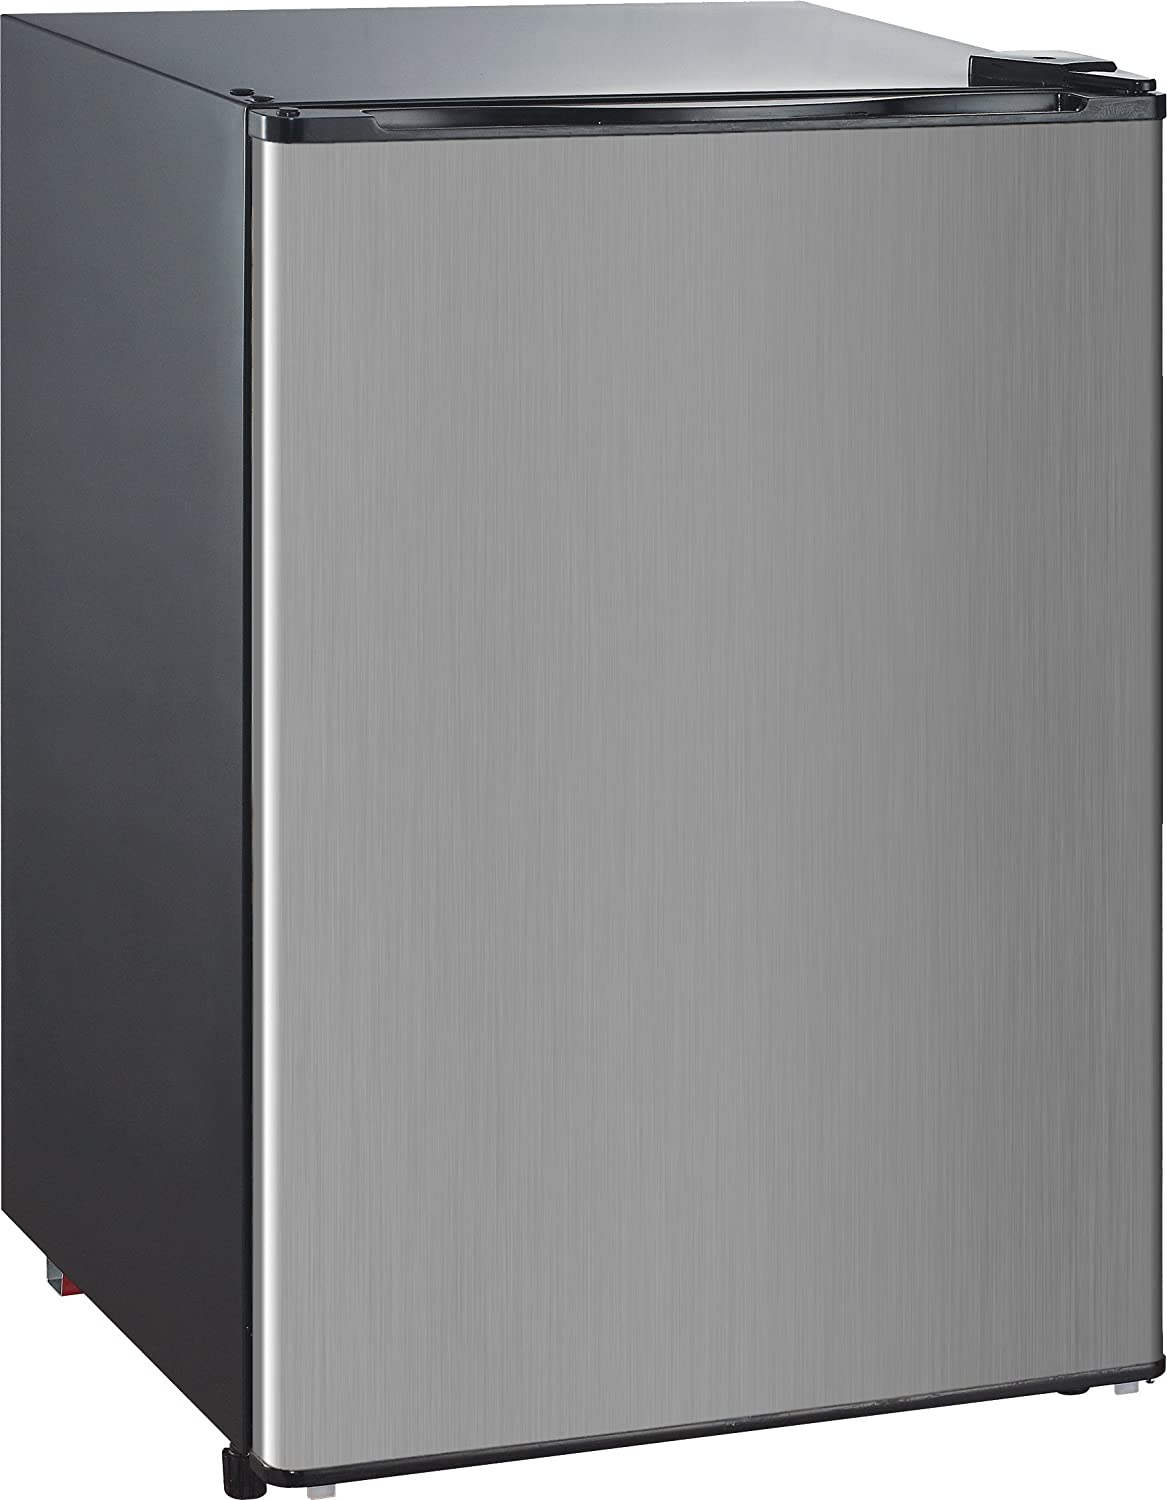 Best Bar Fridge Amp Refrigerator With Ice Maker Detailed Review